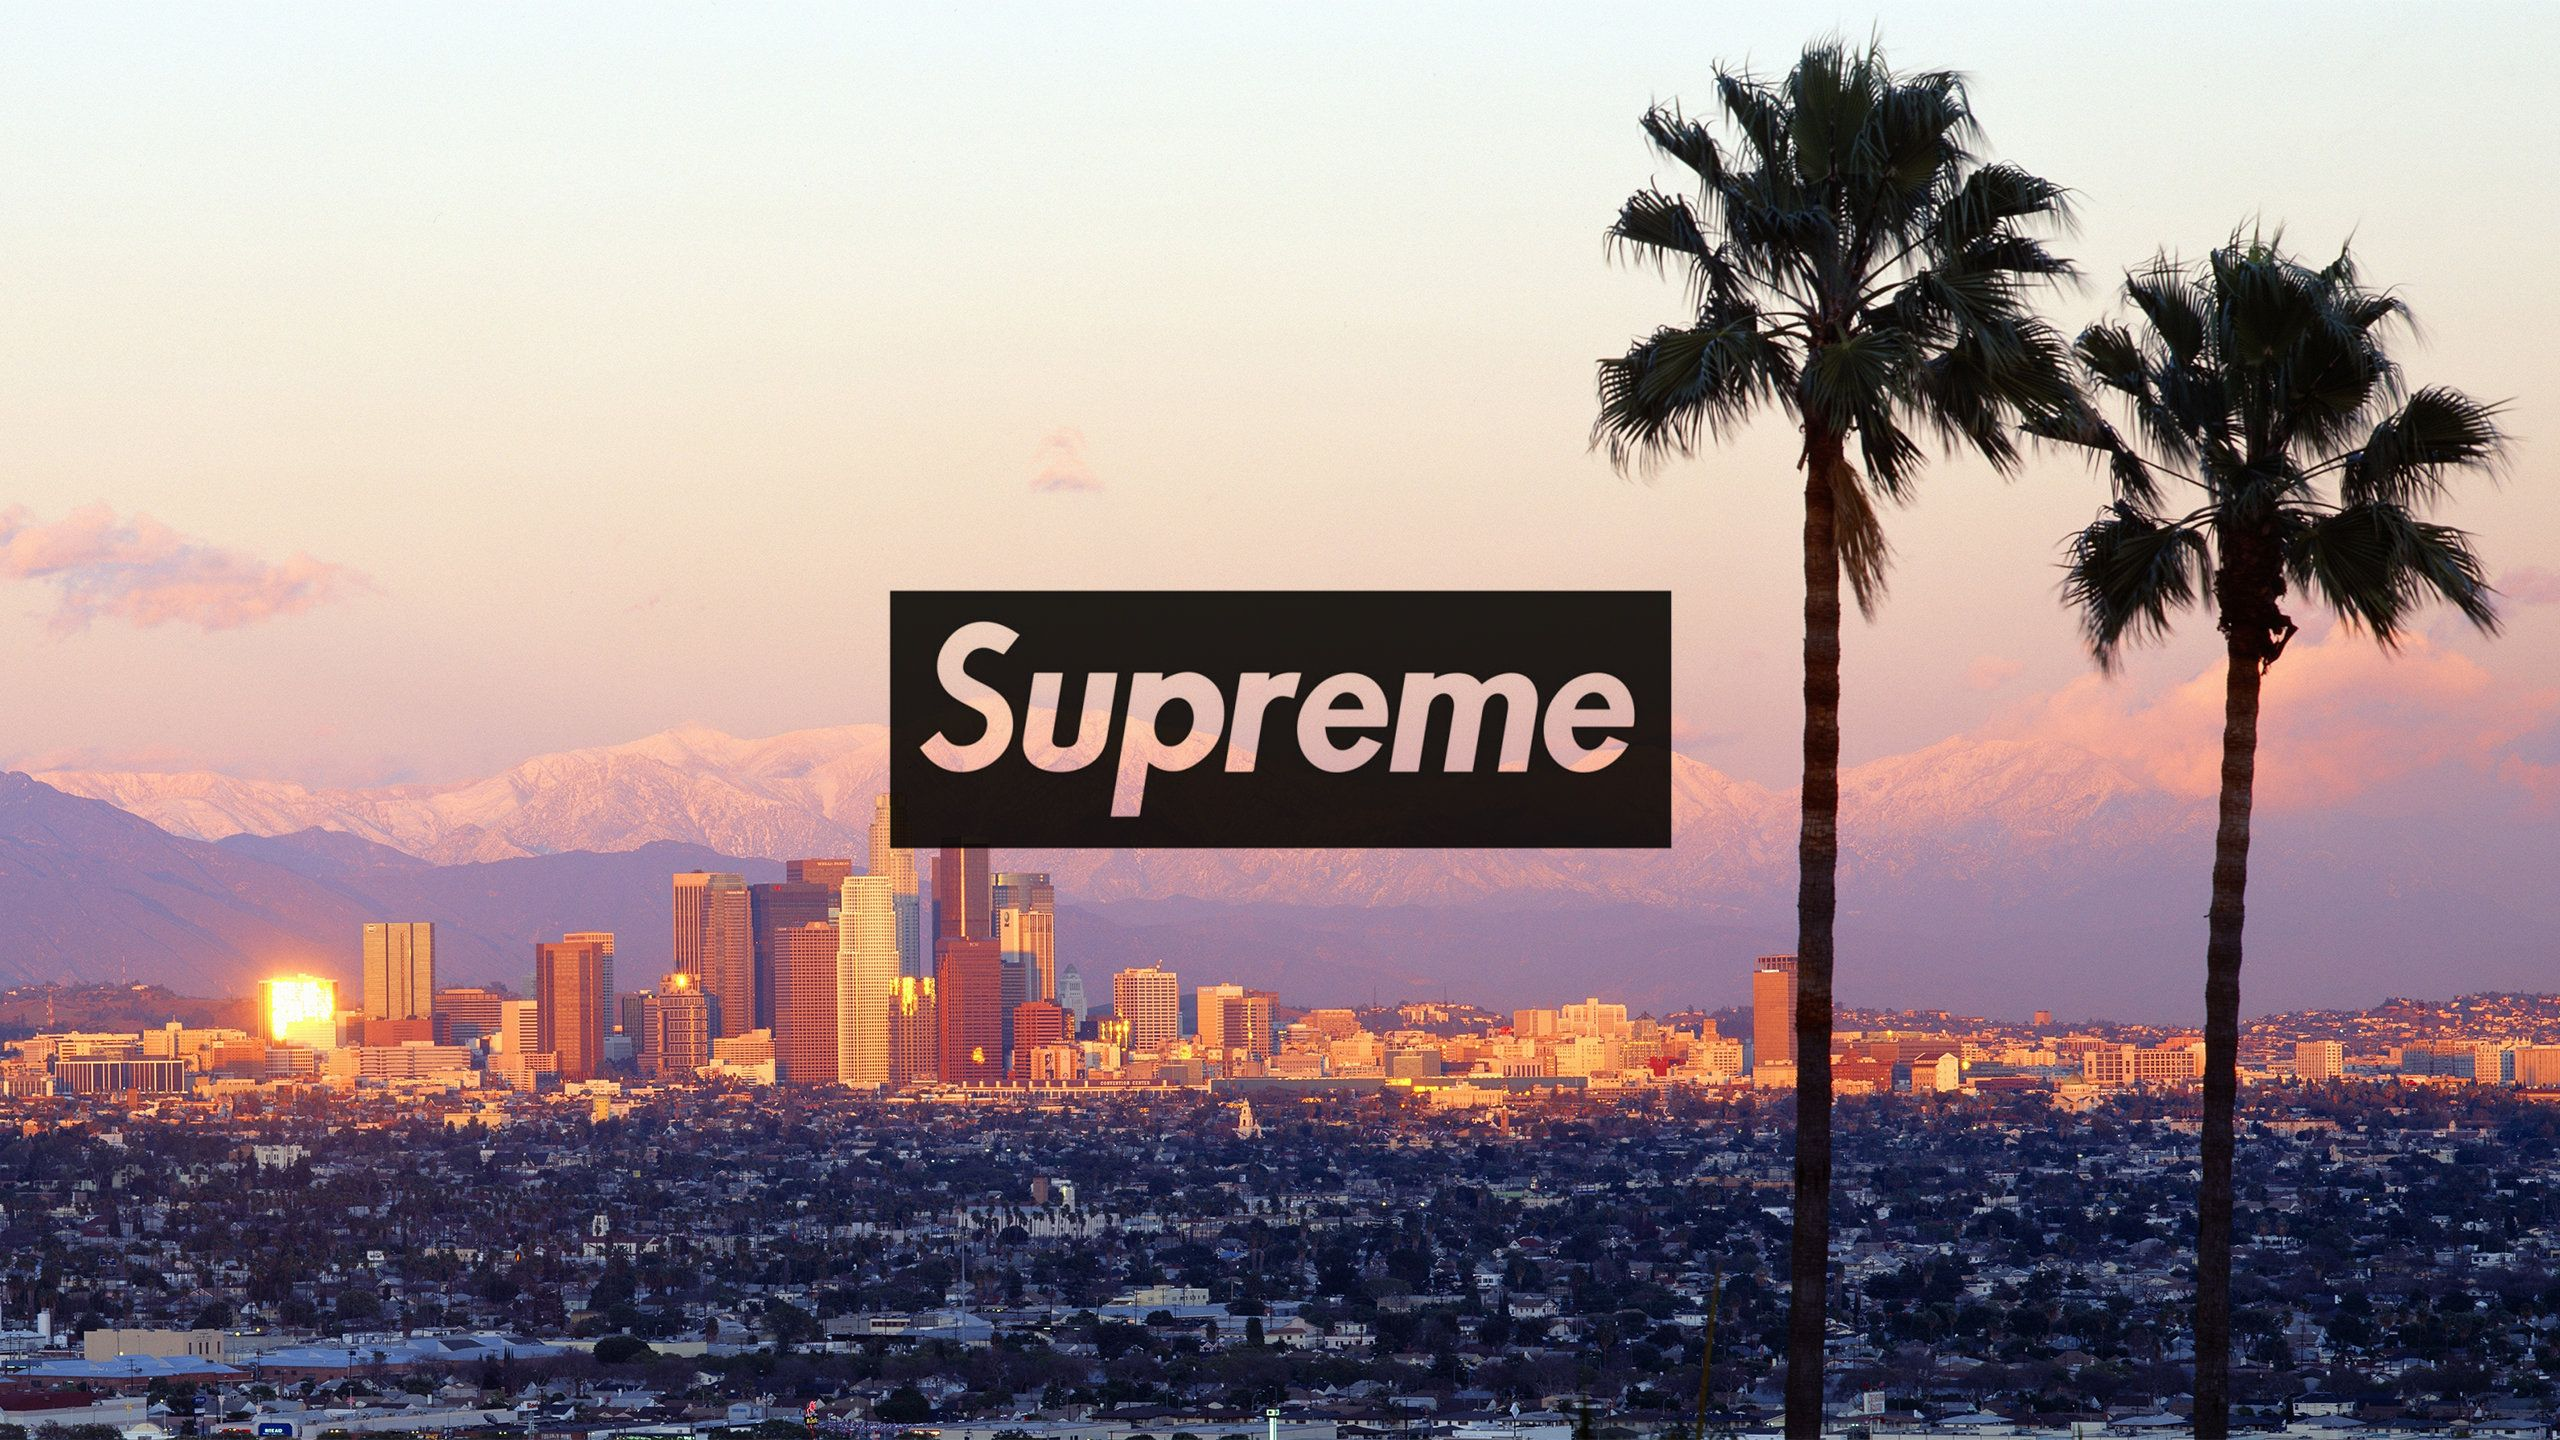 Supreme Desktop Wallpapers Top Free Supreme Desktop